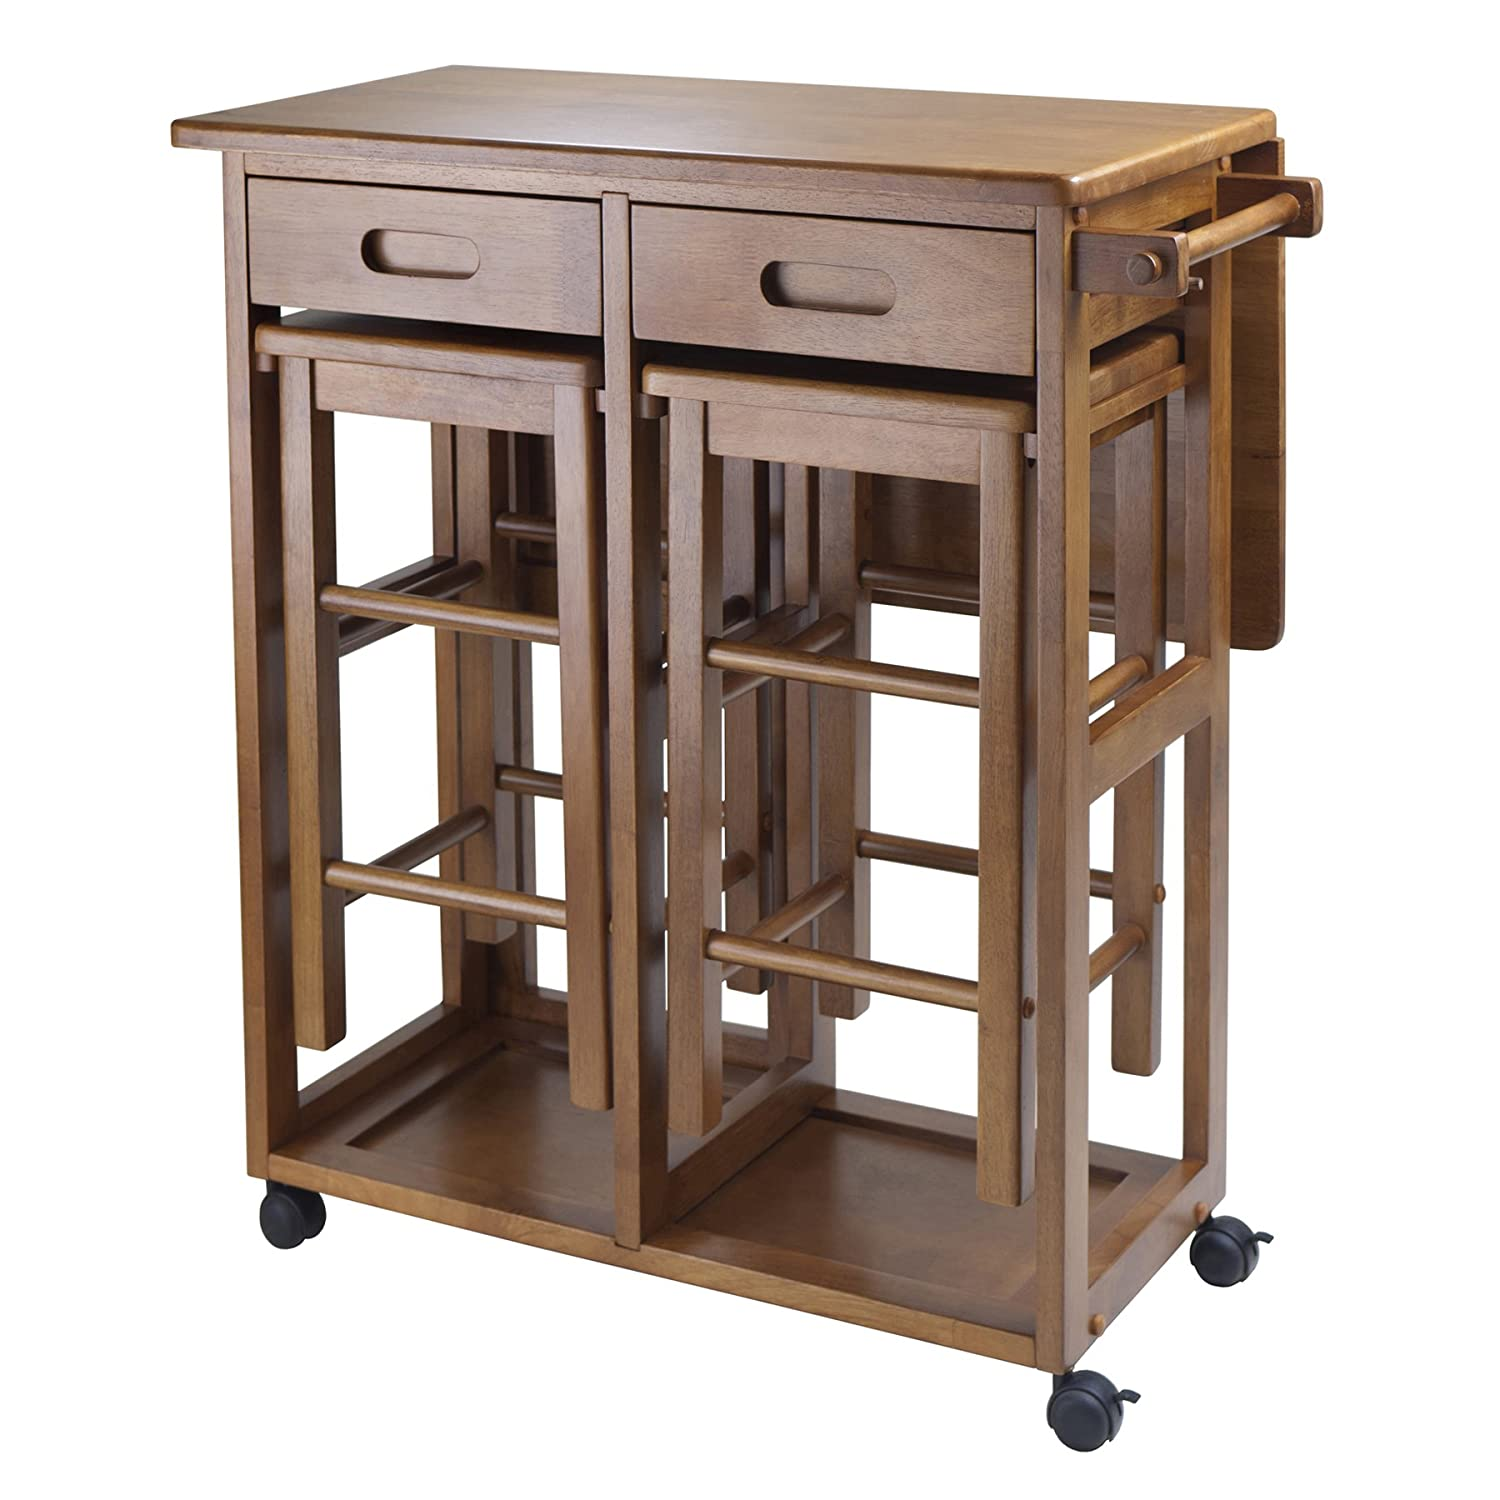 Narrow Kitchen Island Table Small Kitchen Island Table Brown Wood Rolling Lock Compact Two Bar